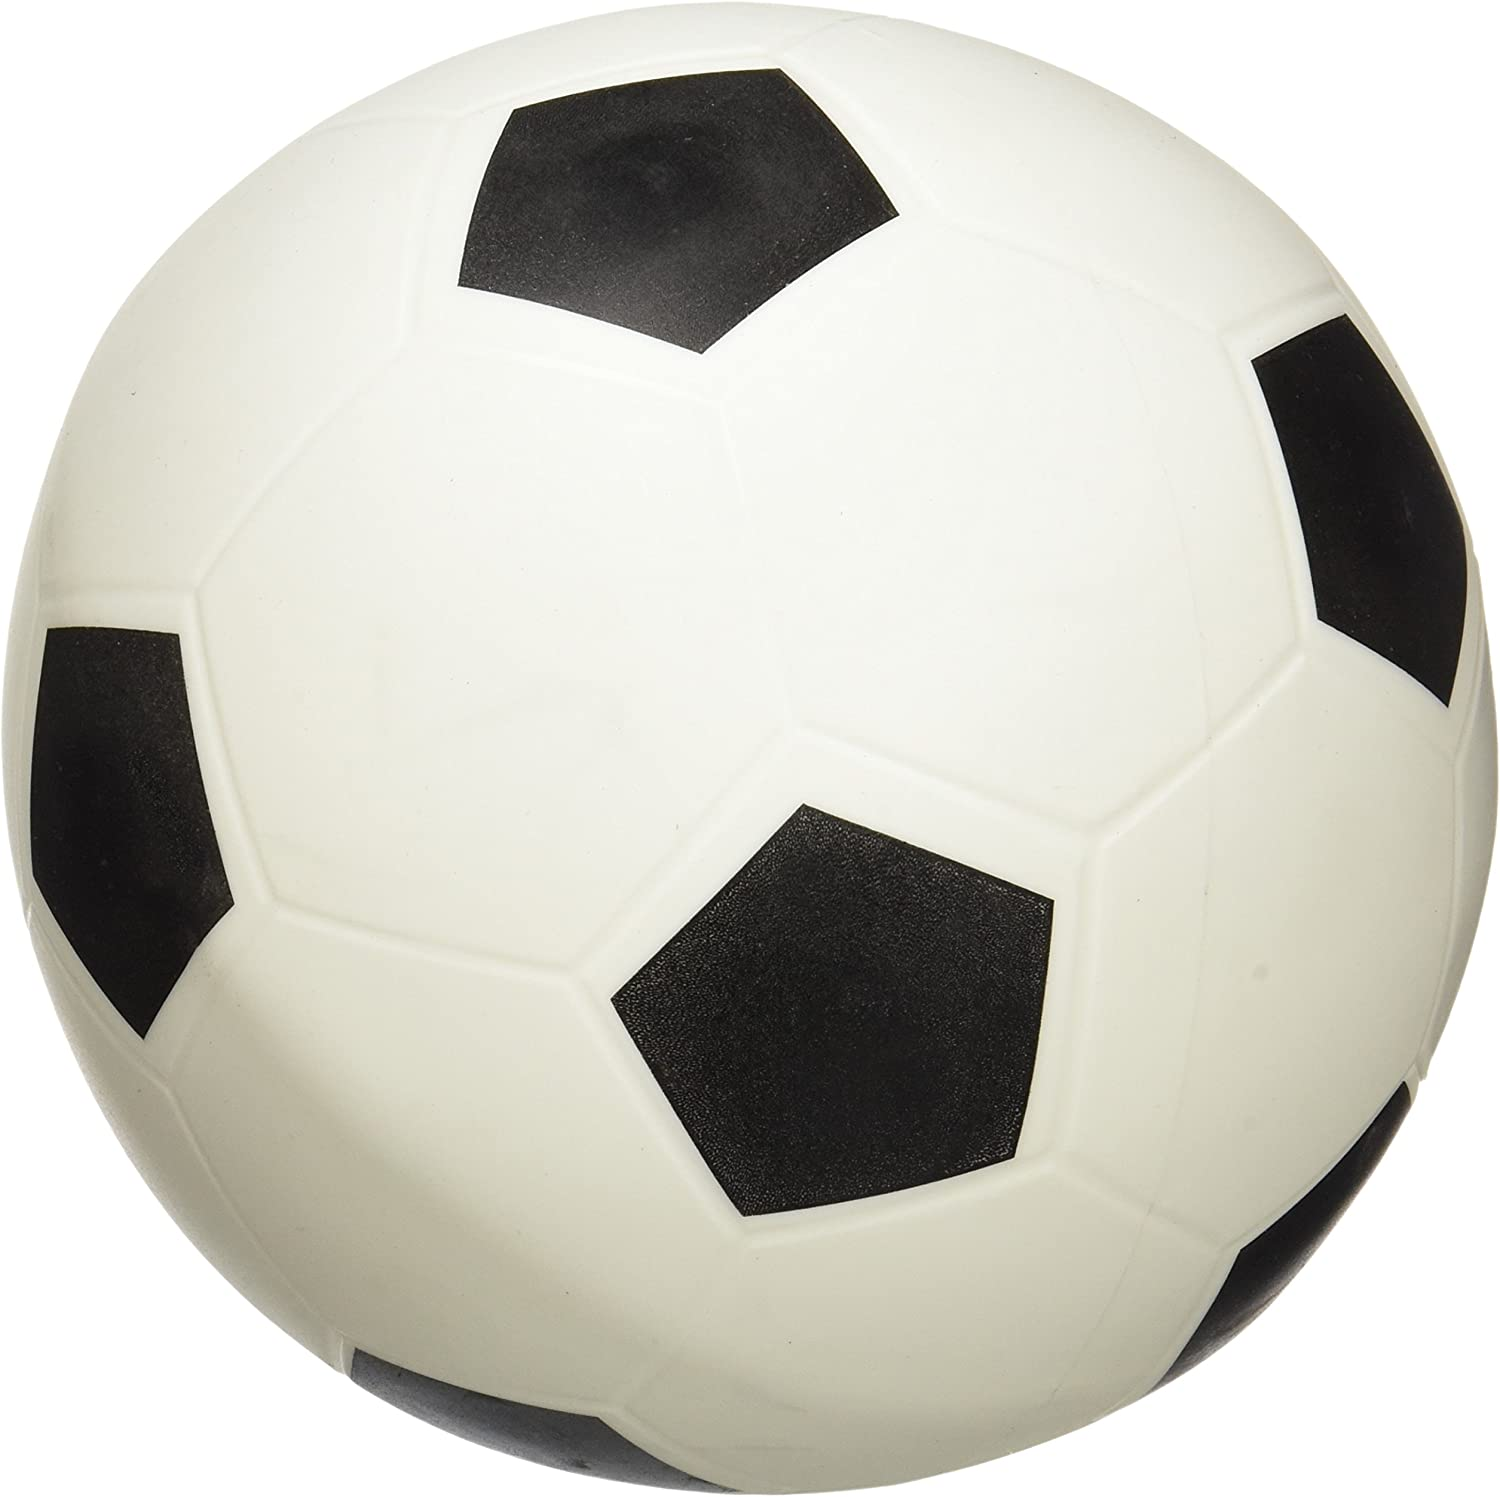 Softee Equipment 0010166 Pelota Futbol Primaria, Blanco, S: Amazon ...